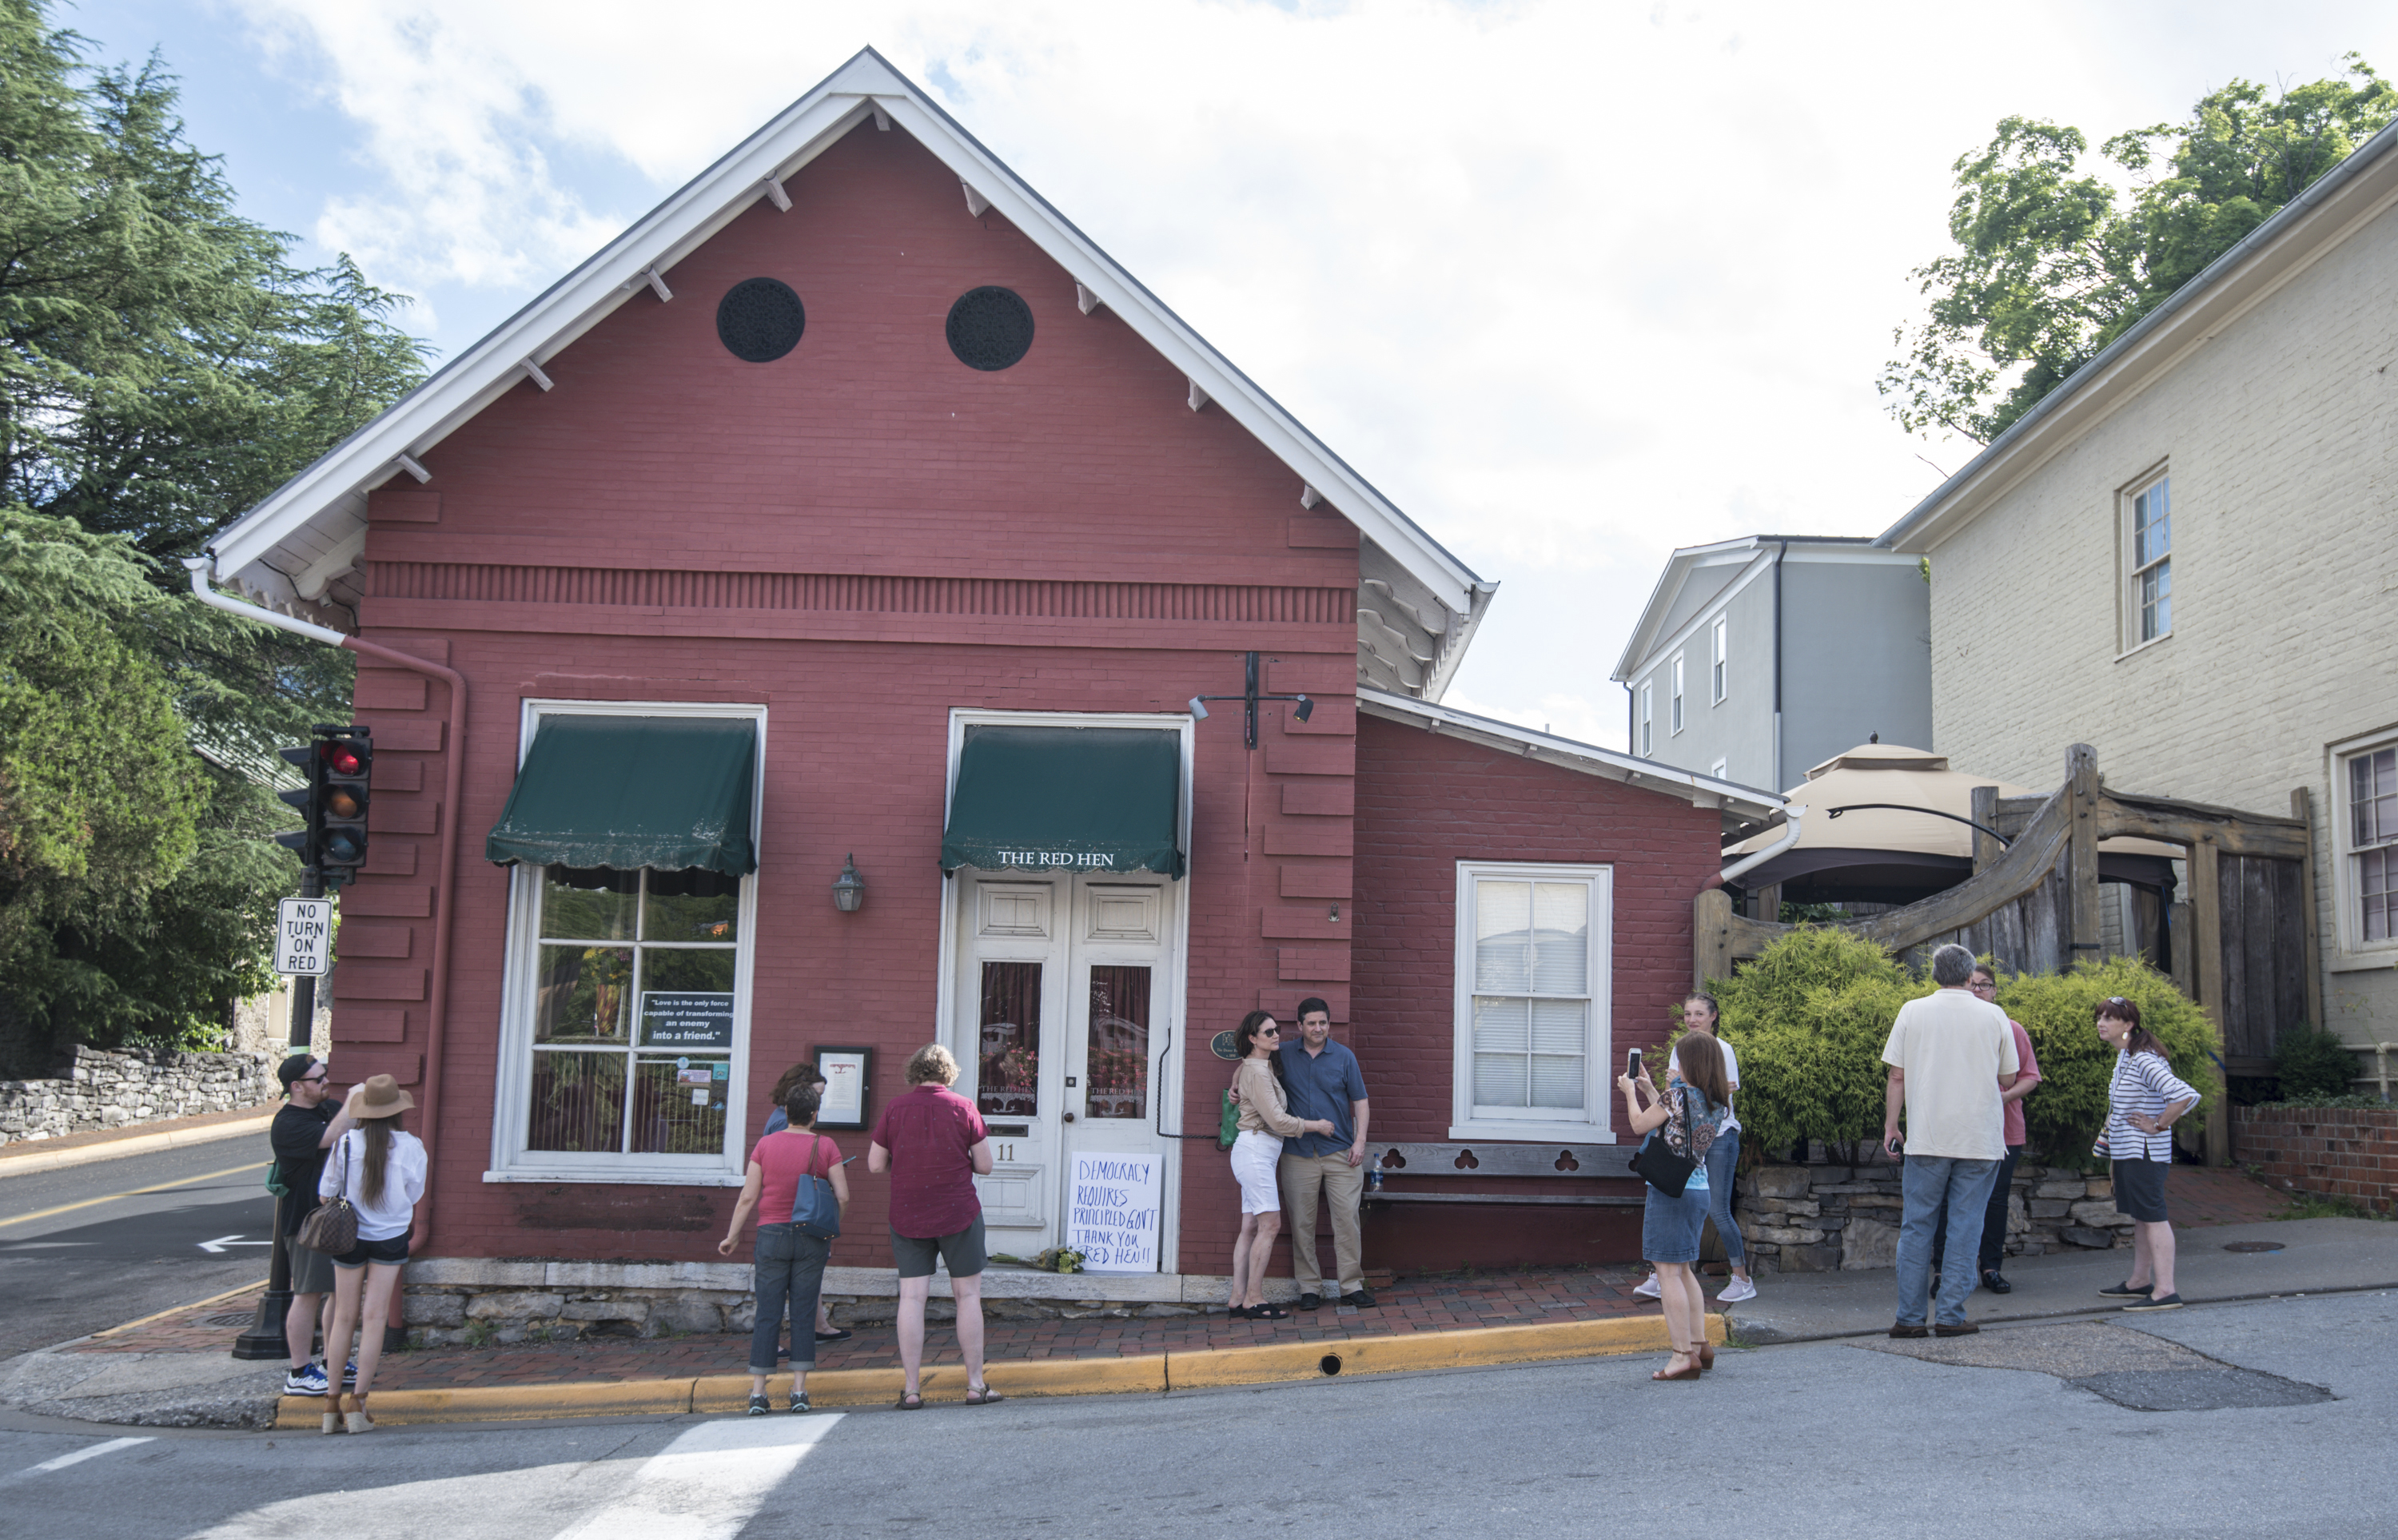 I Own The Red Hen Restaurant That Asked Sarah Sanders To